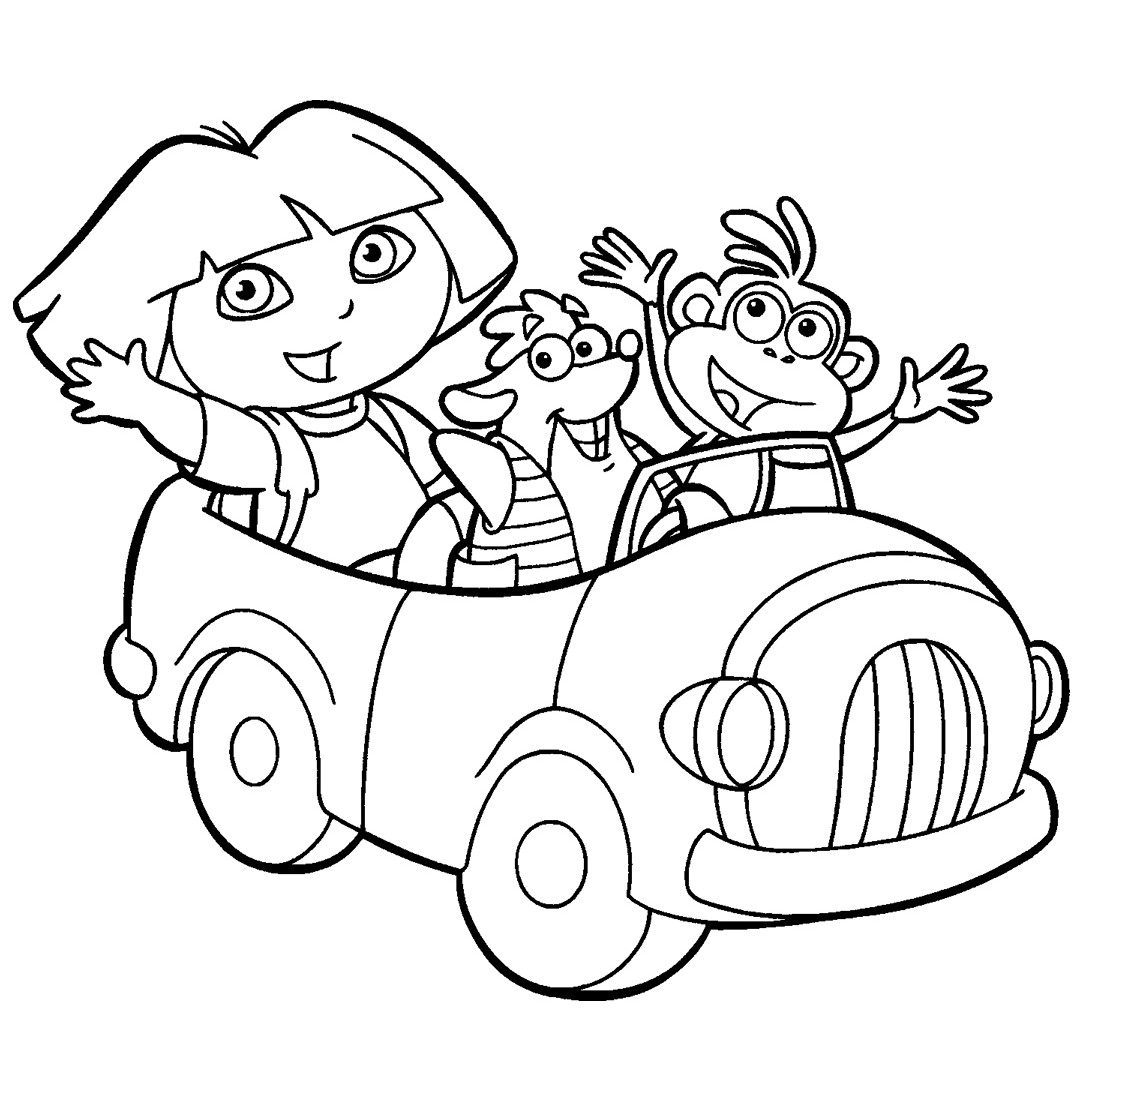 dora colouring pages dora the explorer coloring pages minister coloring pages colouring dora